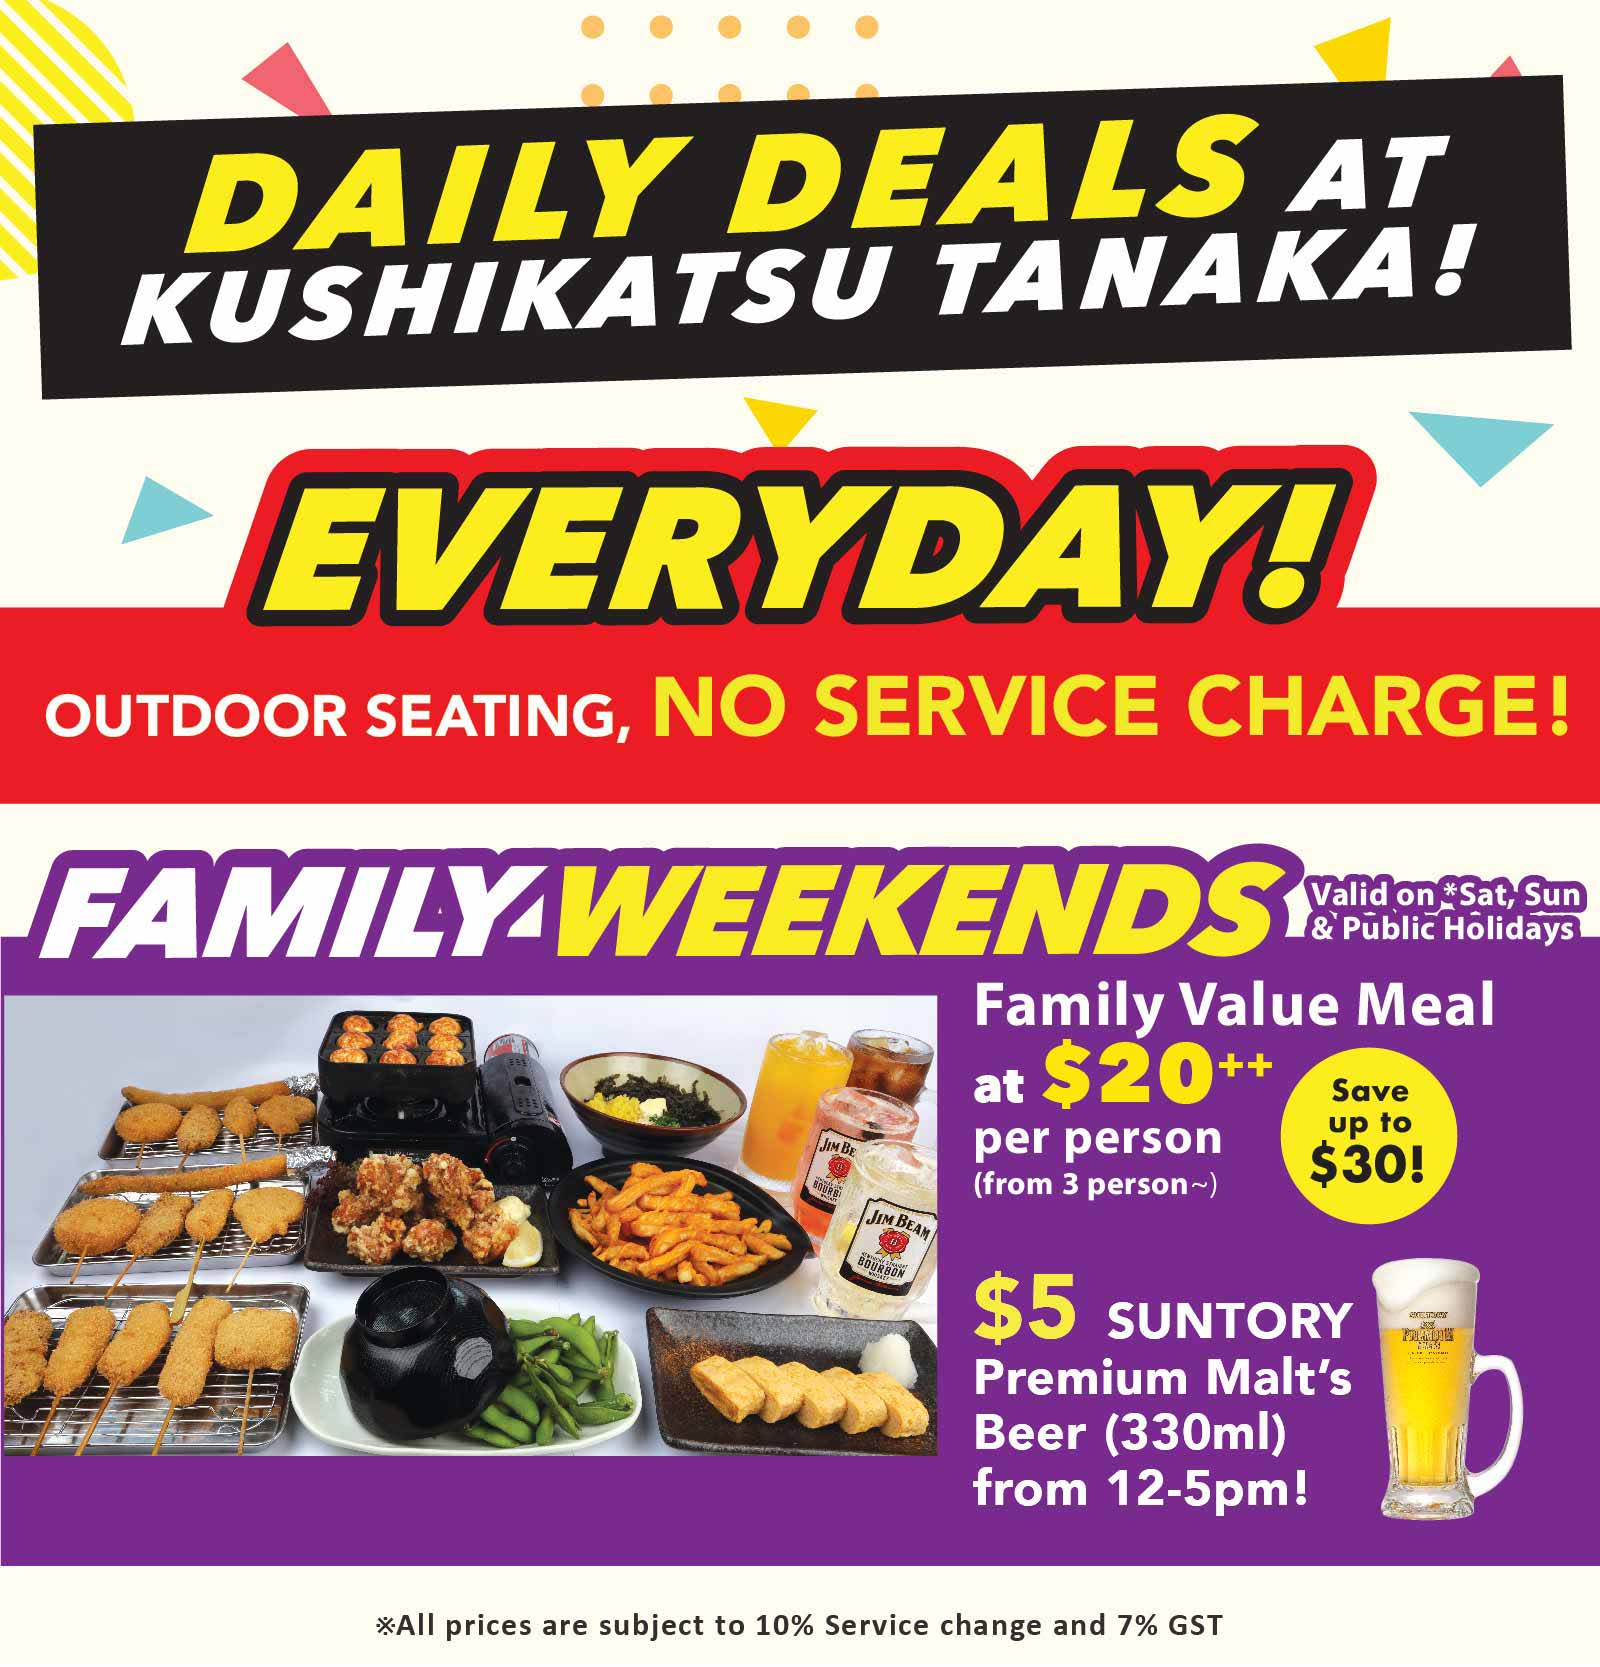 [Promotion] Everyday Is A Party At Kushikatsu Tanaka! | Why Not Deals 3 & Promotions